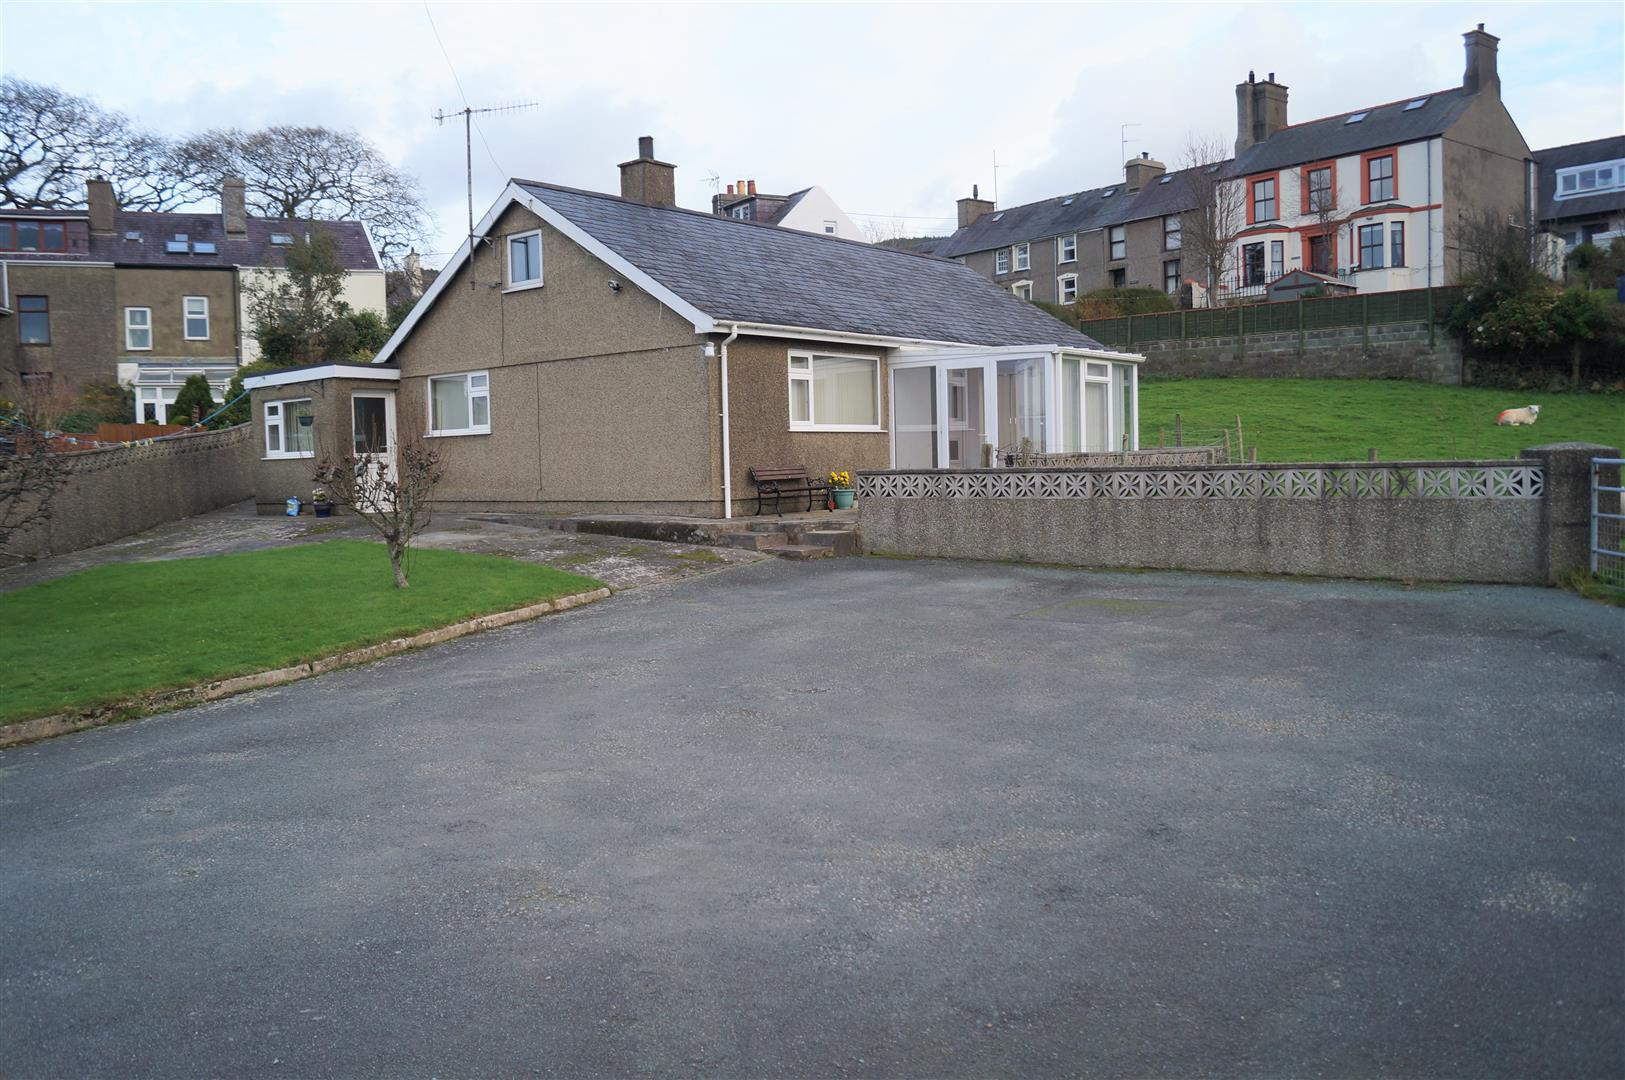 Y Fron, Nefyn - £245,000/Price guide